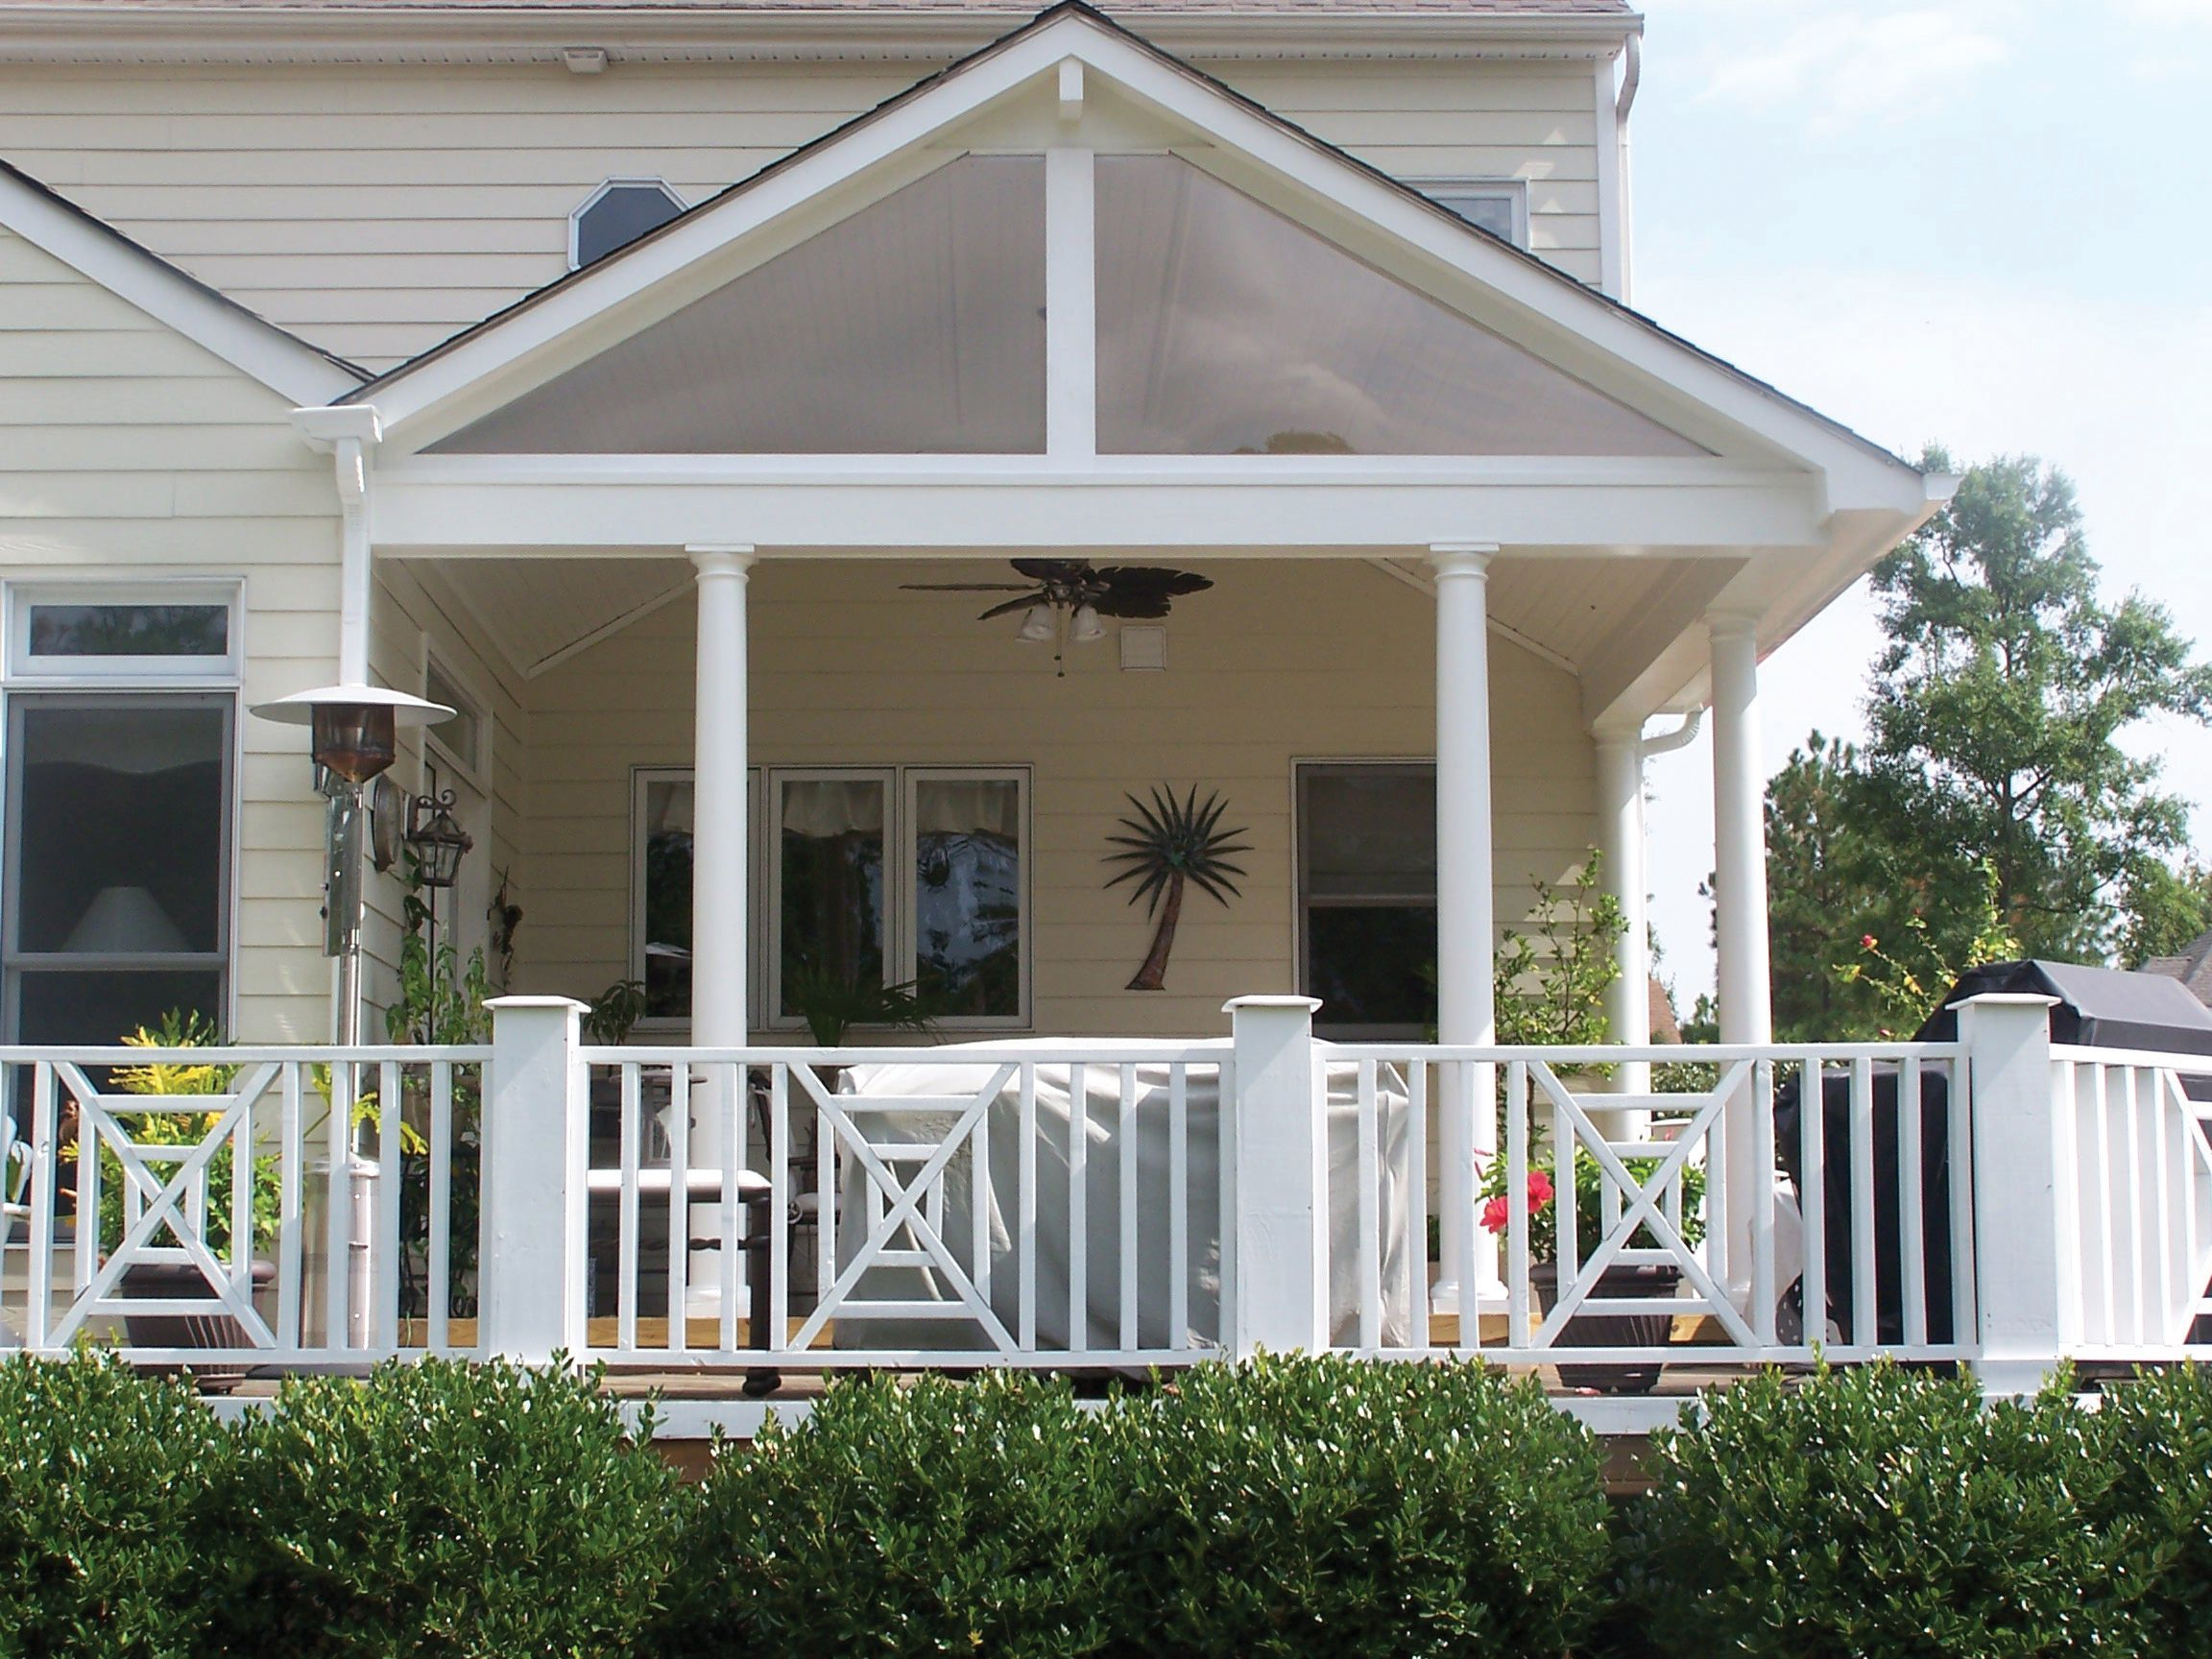 Back porch roof ideas - Covered Deck Addition Design This Gabled Roof Lends Clean Design Lines In This Covered Porch